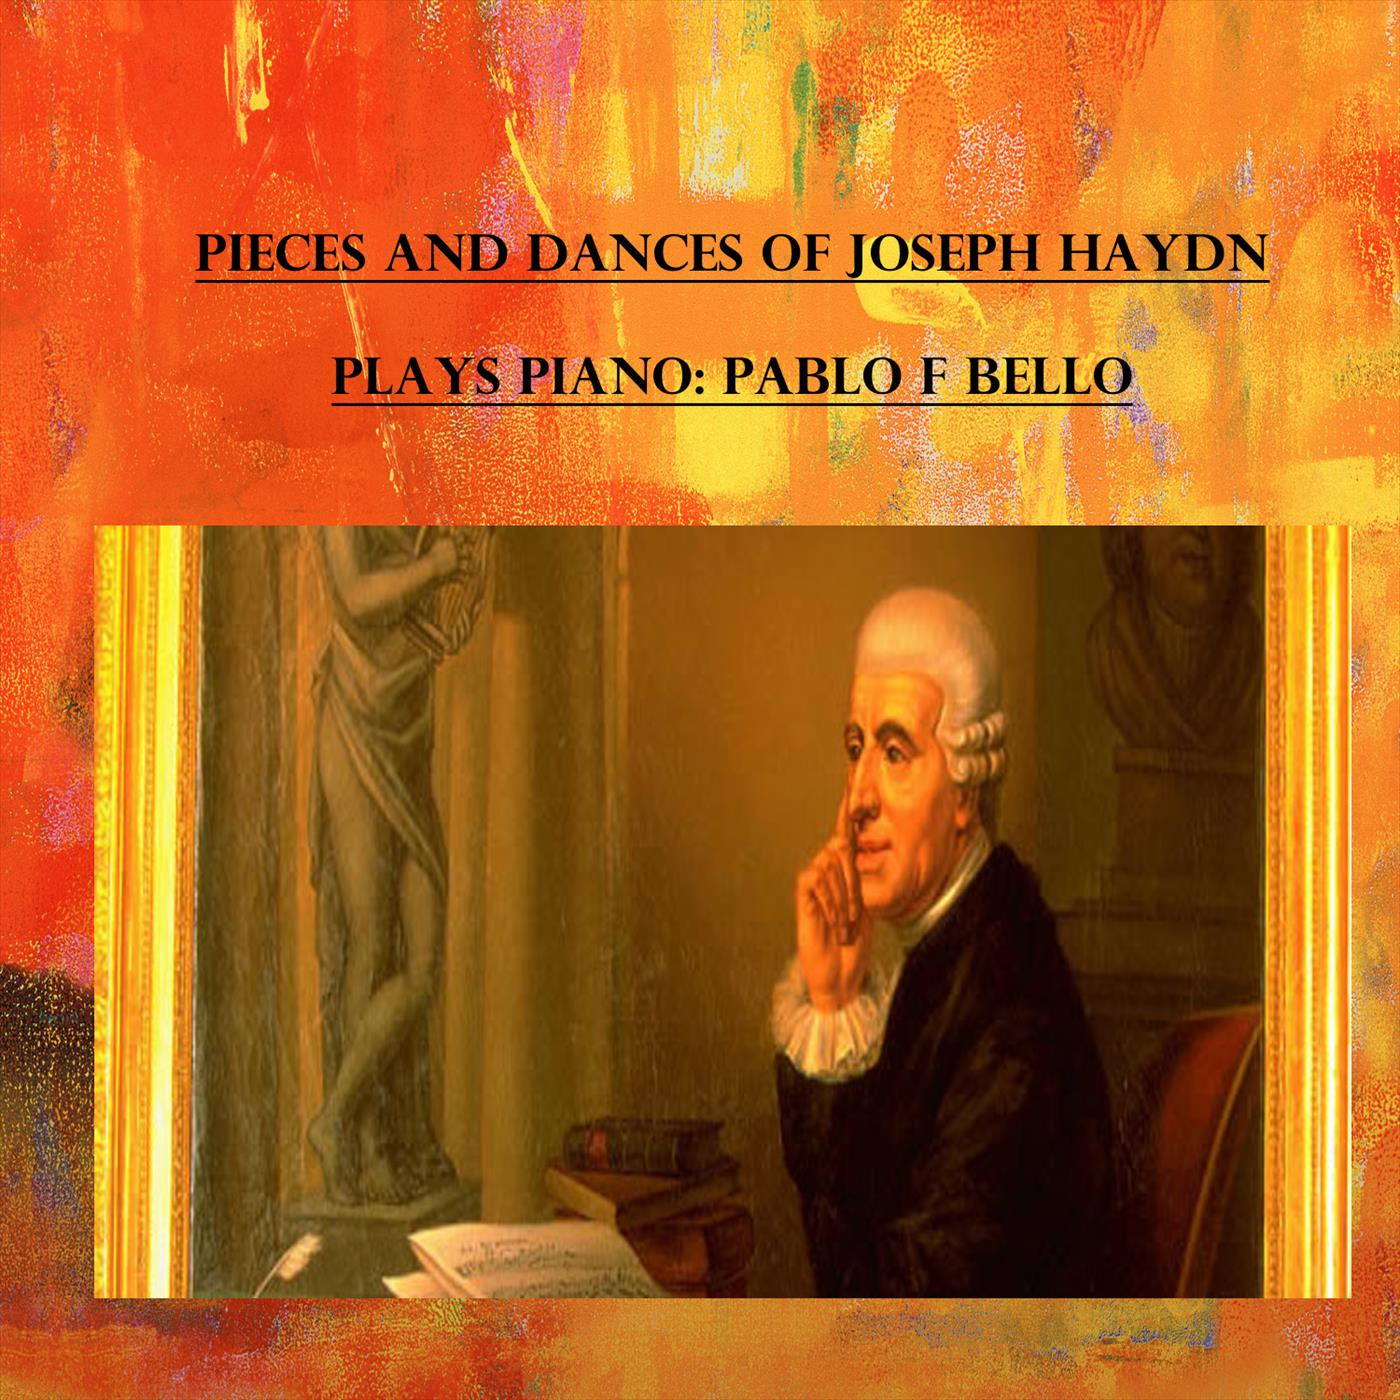 Pieces and dances Of Joseph Haydn